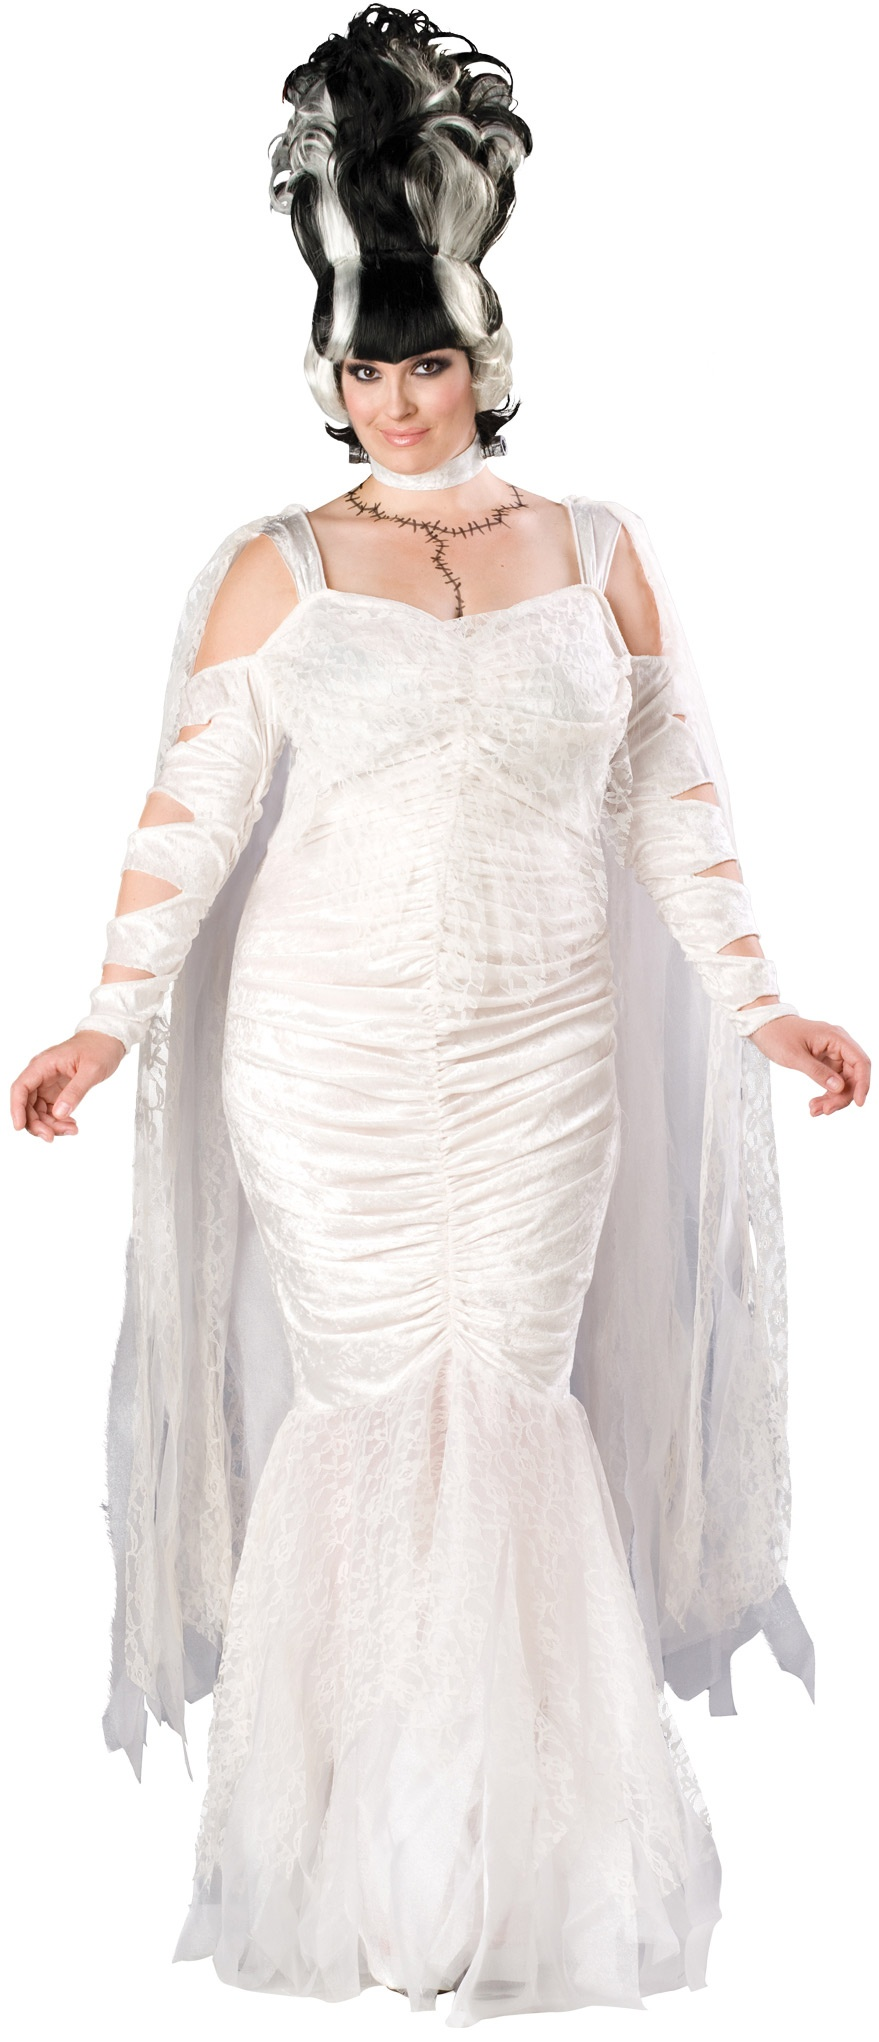 Plus Size Monster Bride Costume